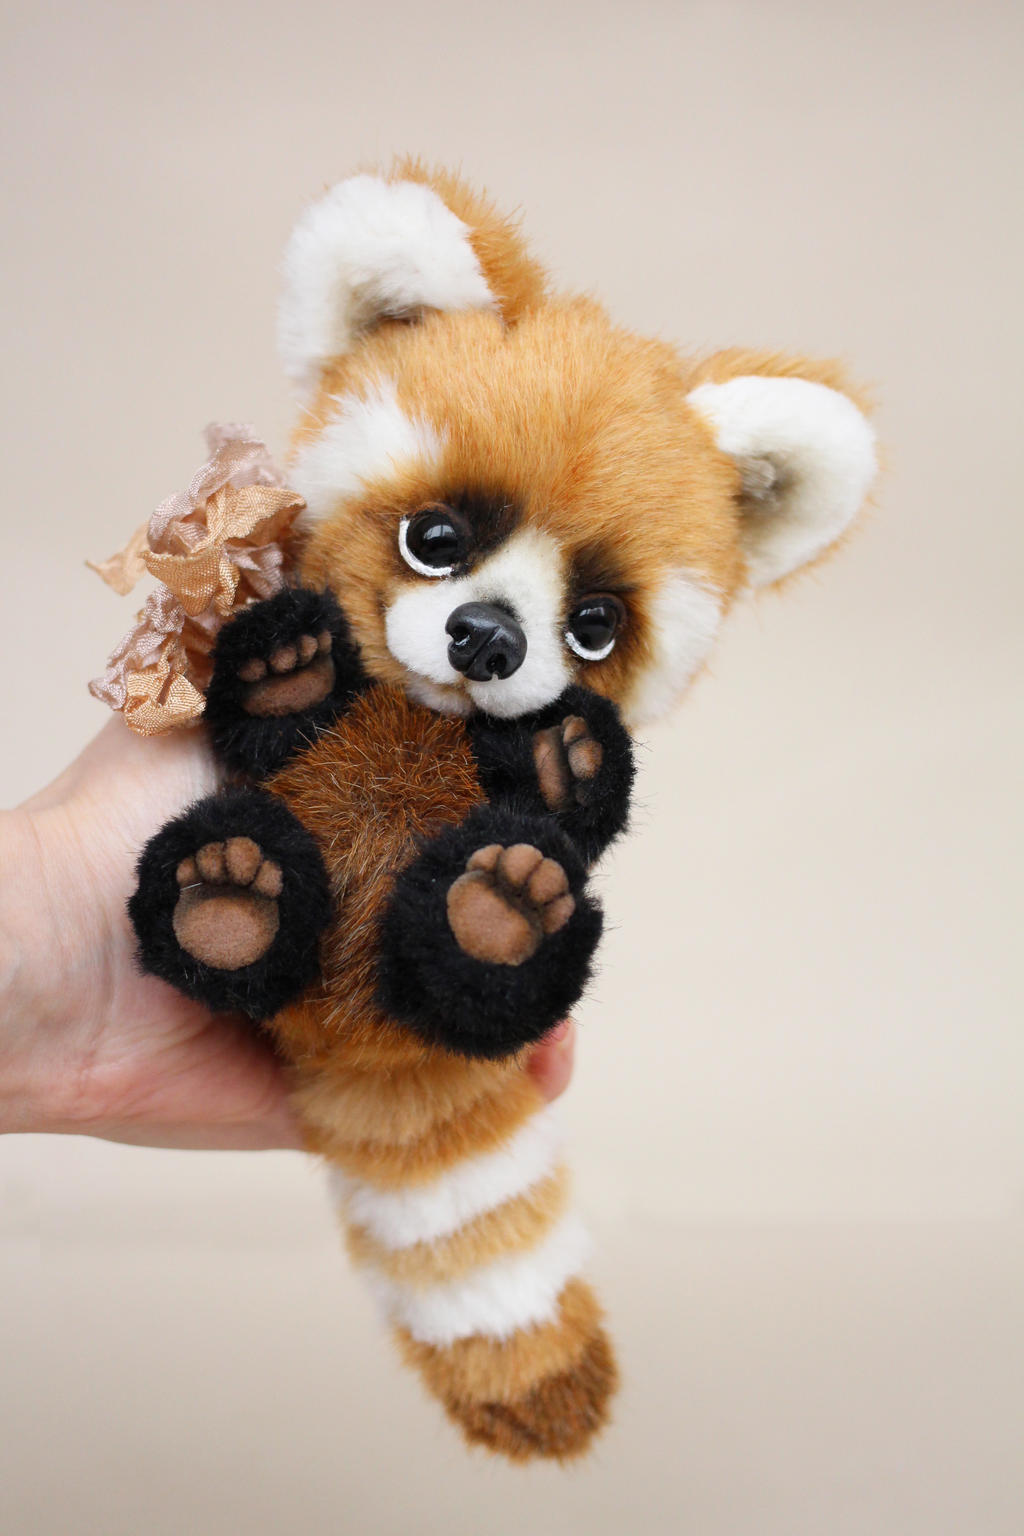 Red Panda by Matlyak